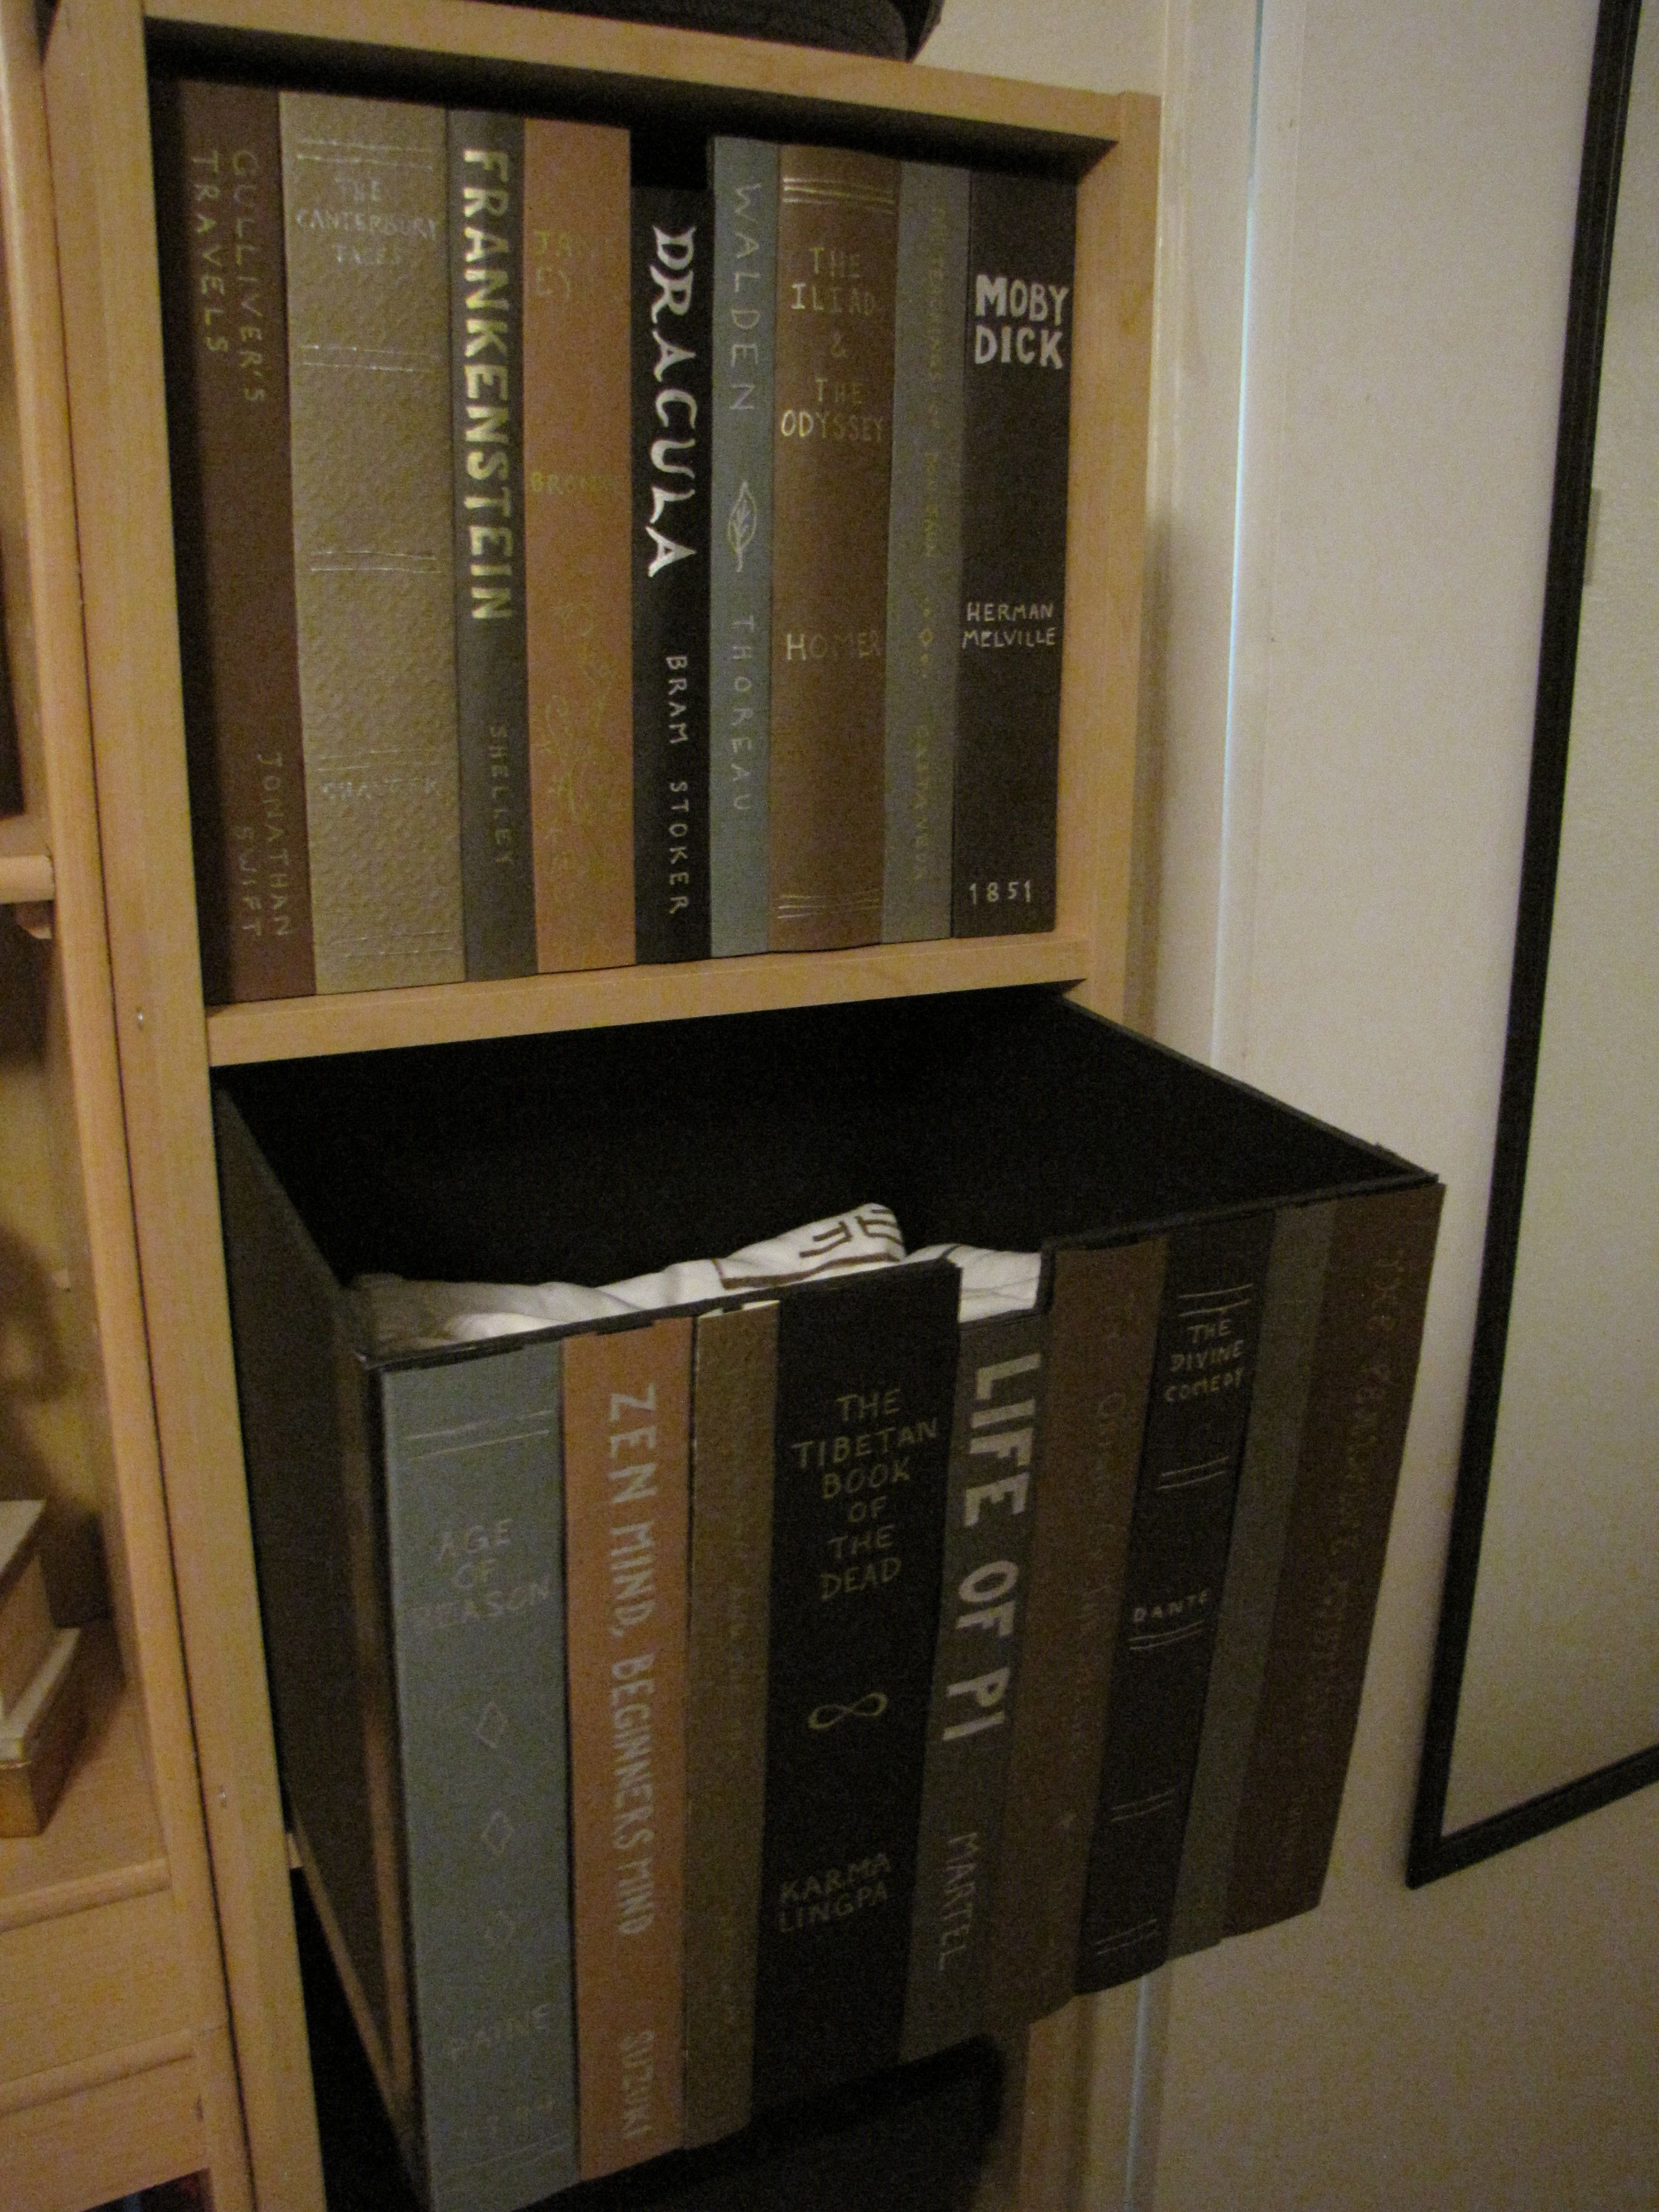 make a box with faux book spines to hide stuff inside book spine